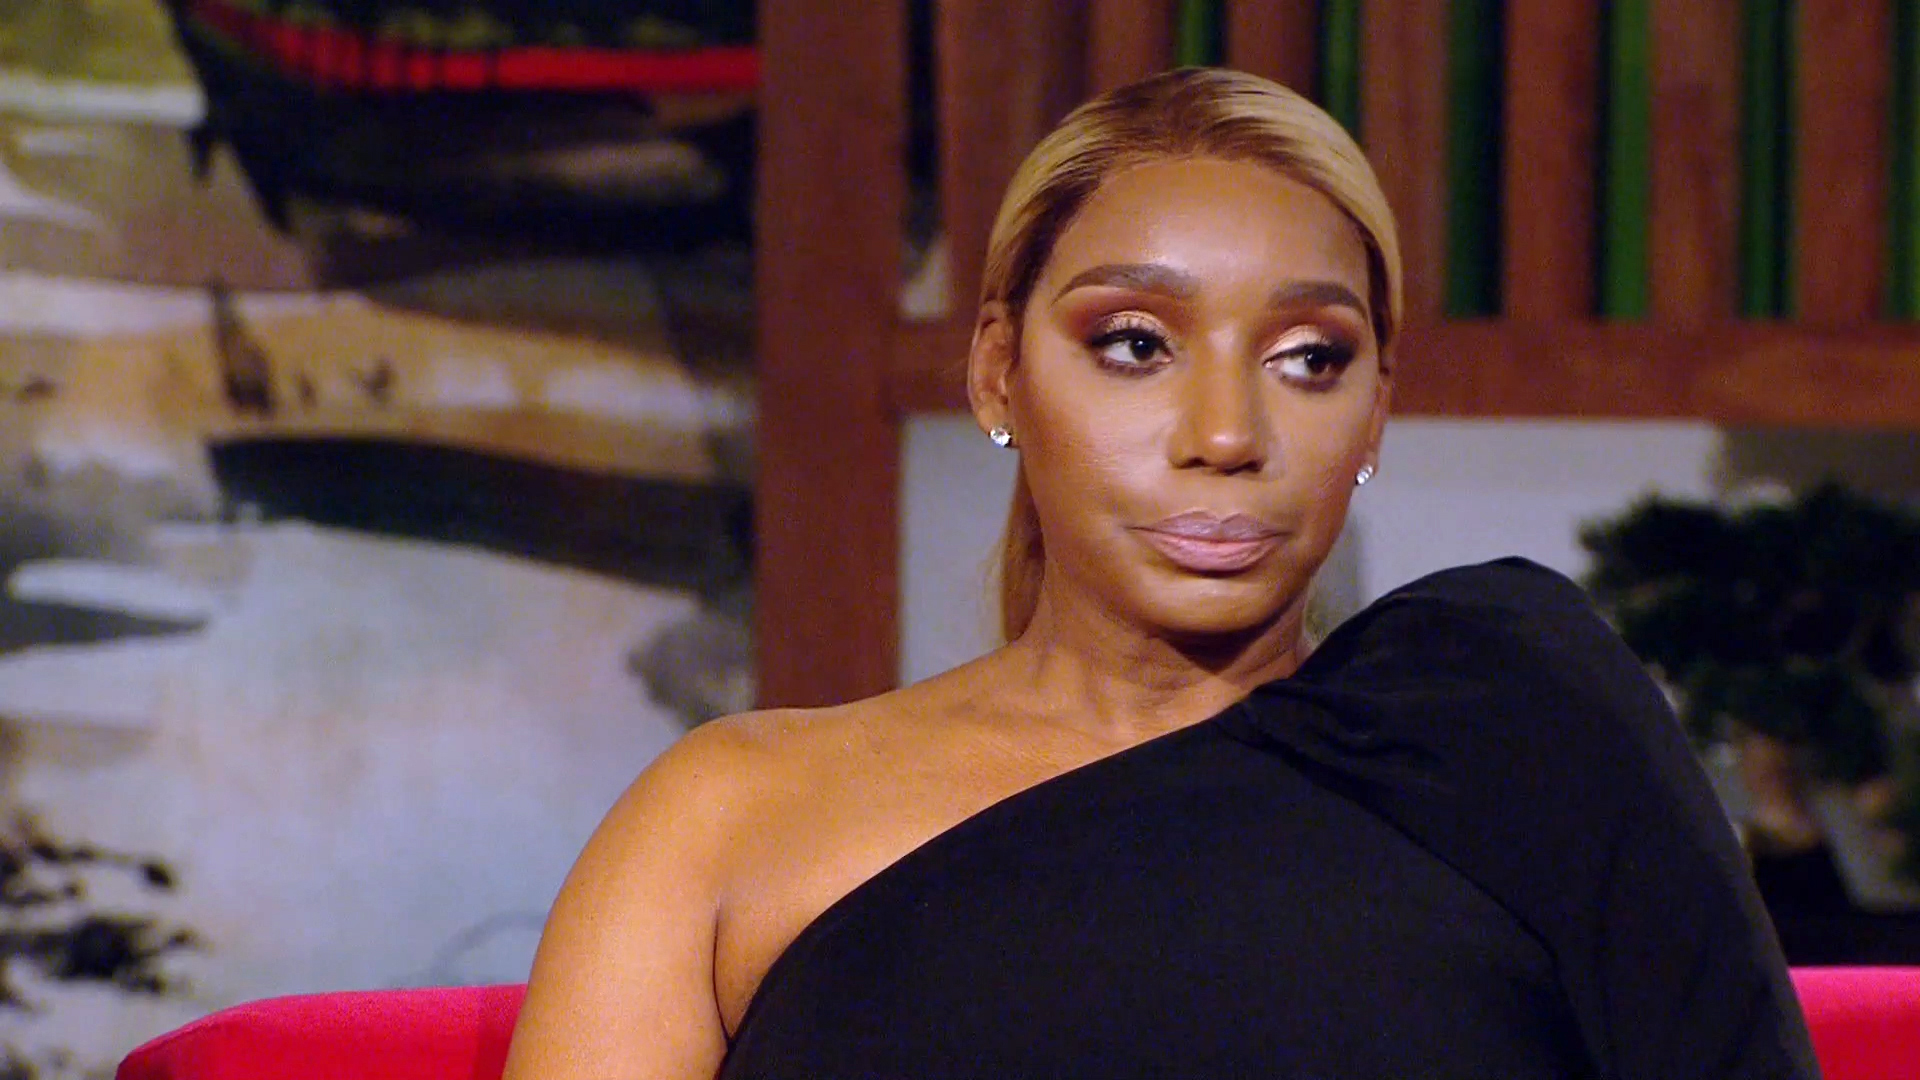 nene-leakes-is-over-her-rhoa-co-stars-betrayal-but-not-surprised-they-turned-against-her